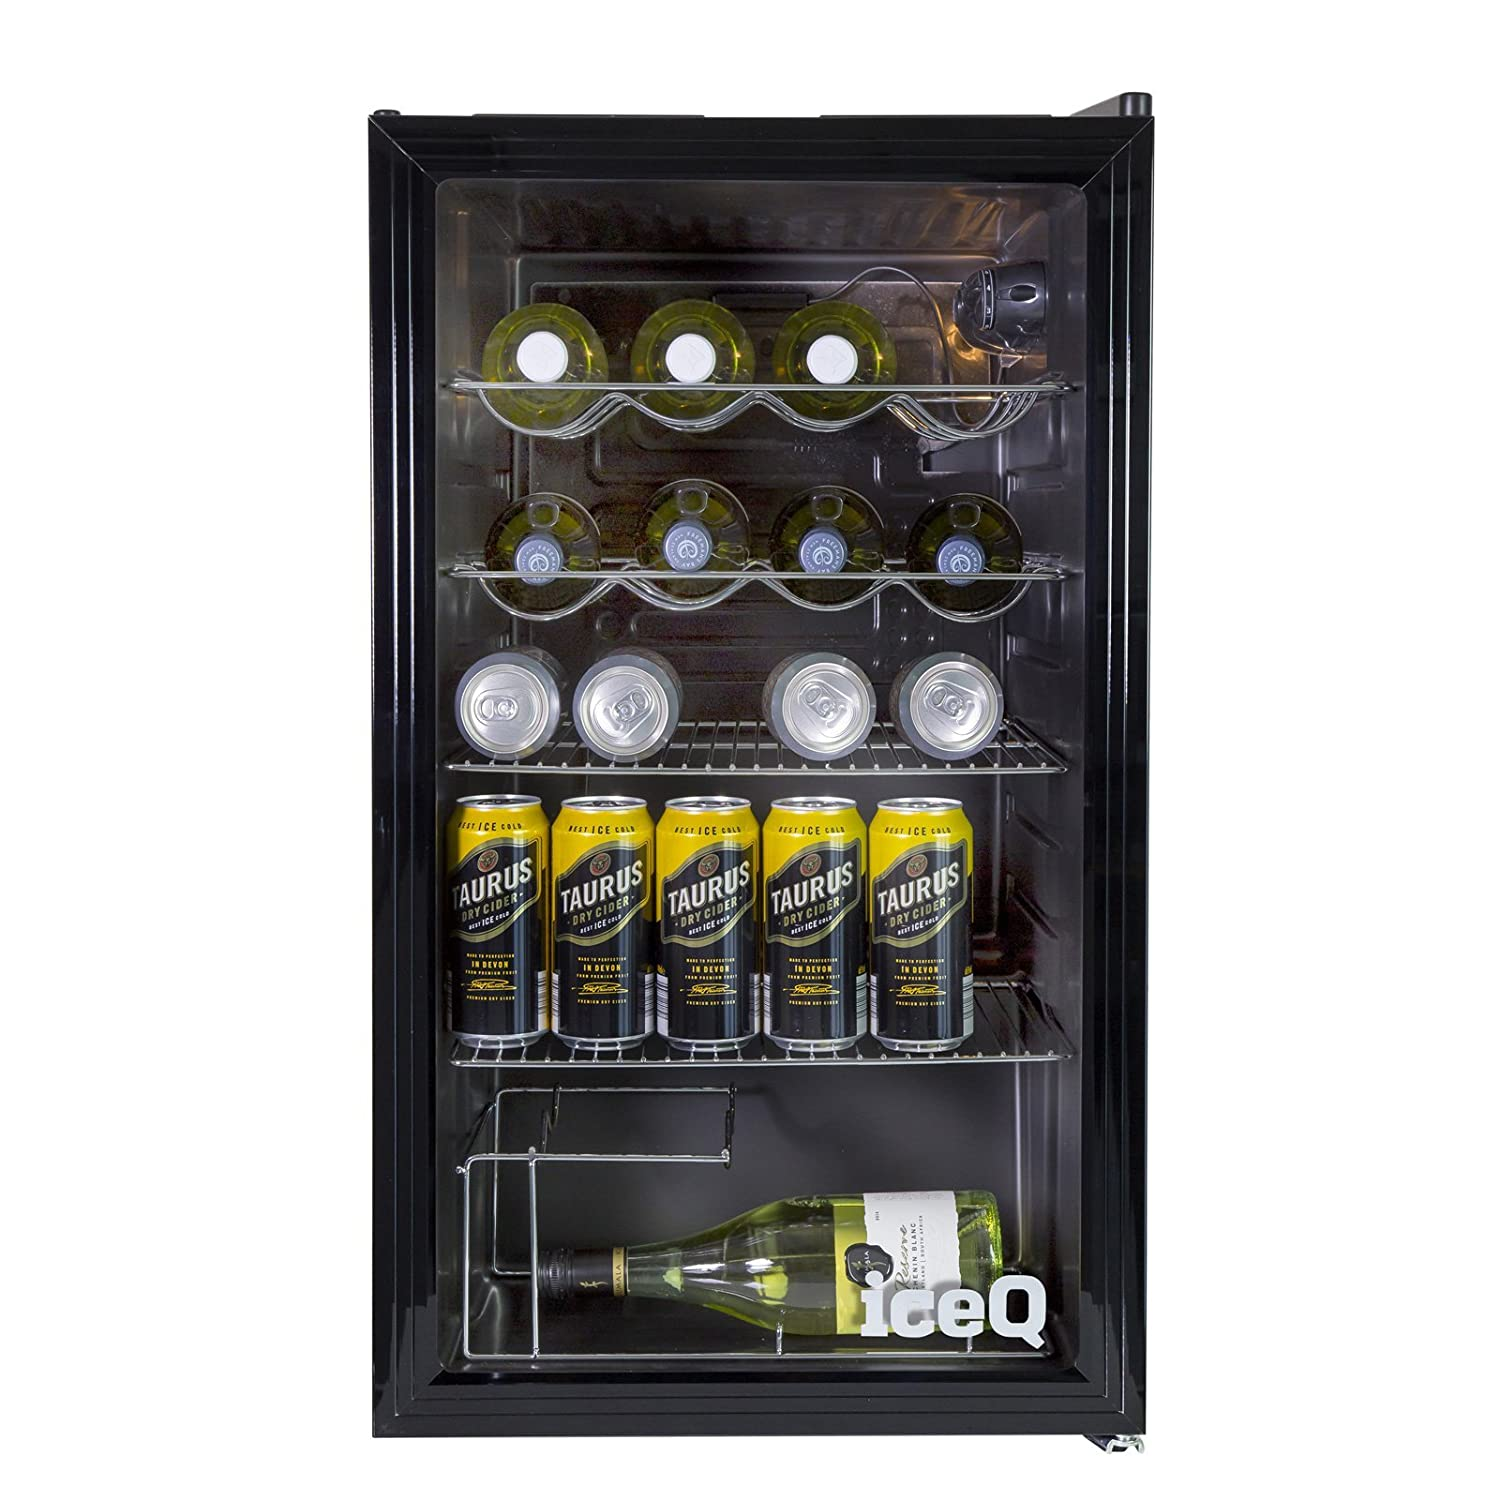 Iceq 93 litre under counter glass door display fridge amazon iceq 93 litre under counter glass door display fridge amazon large appliances planetlyrics Image collections